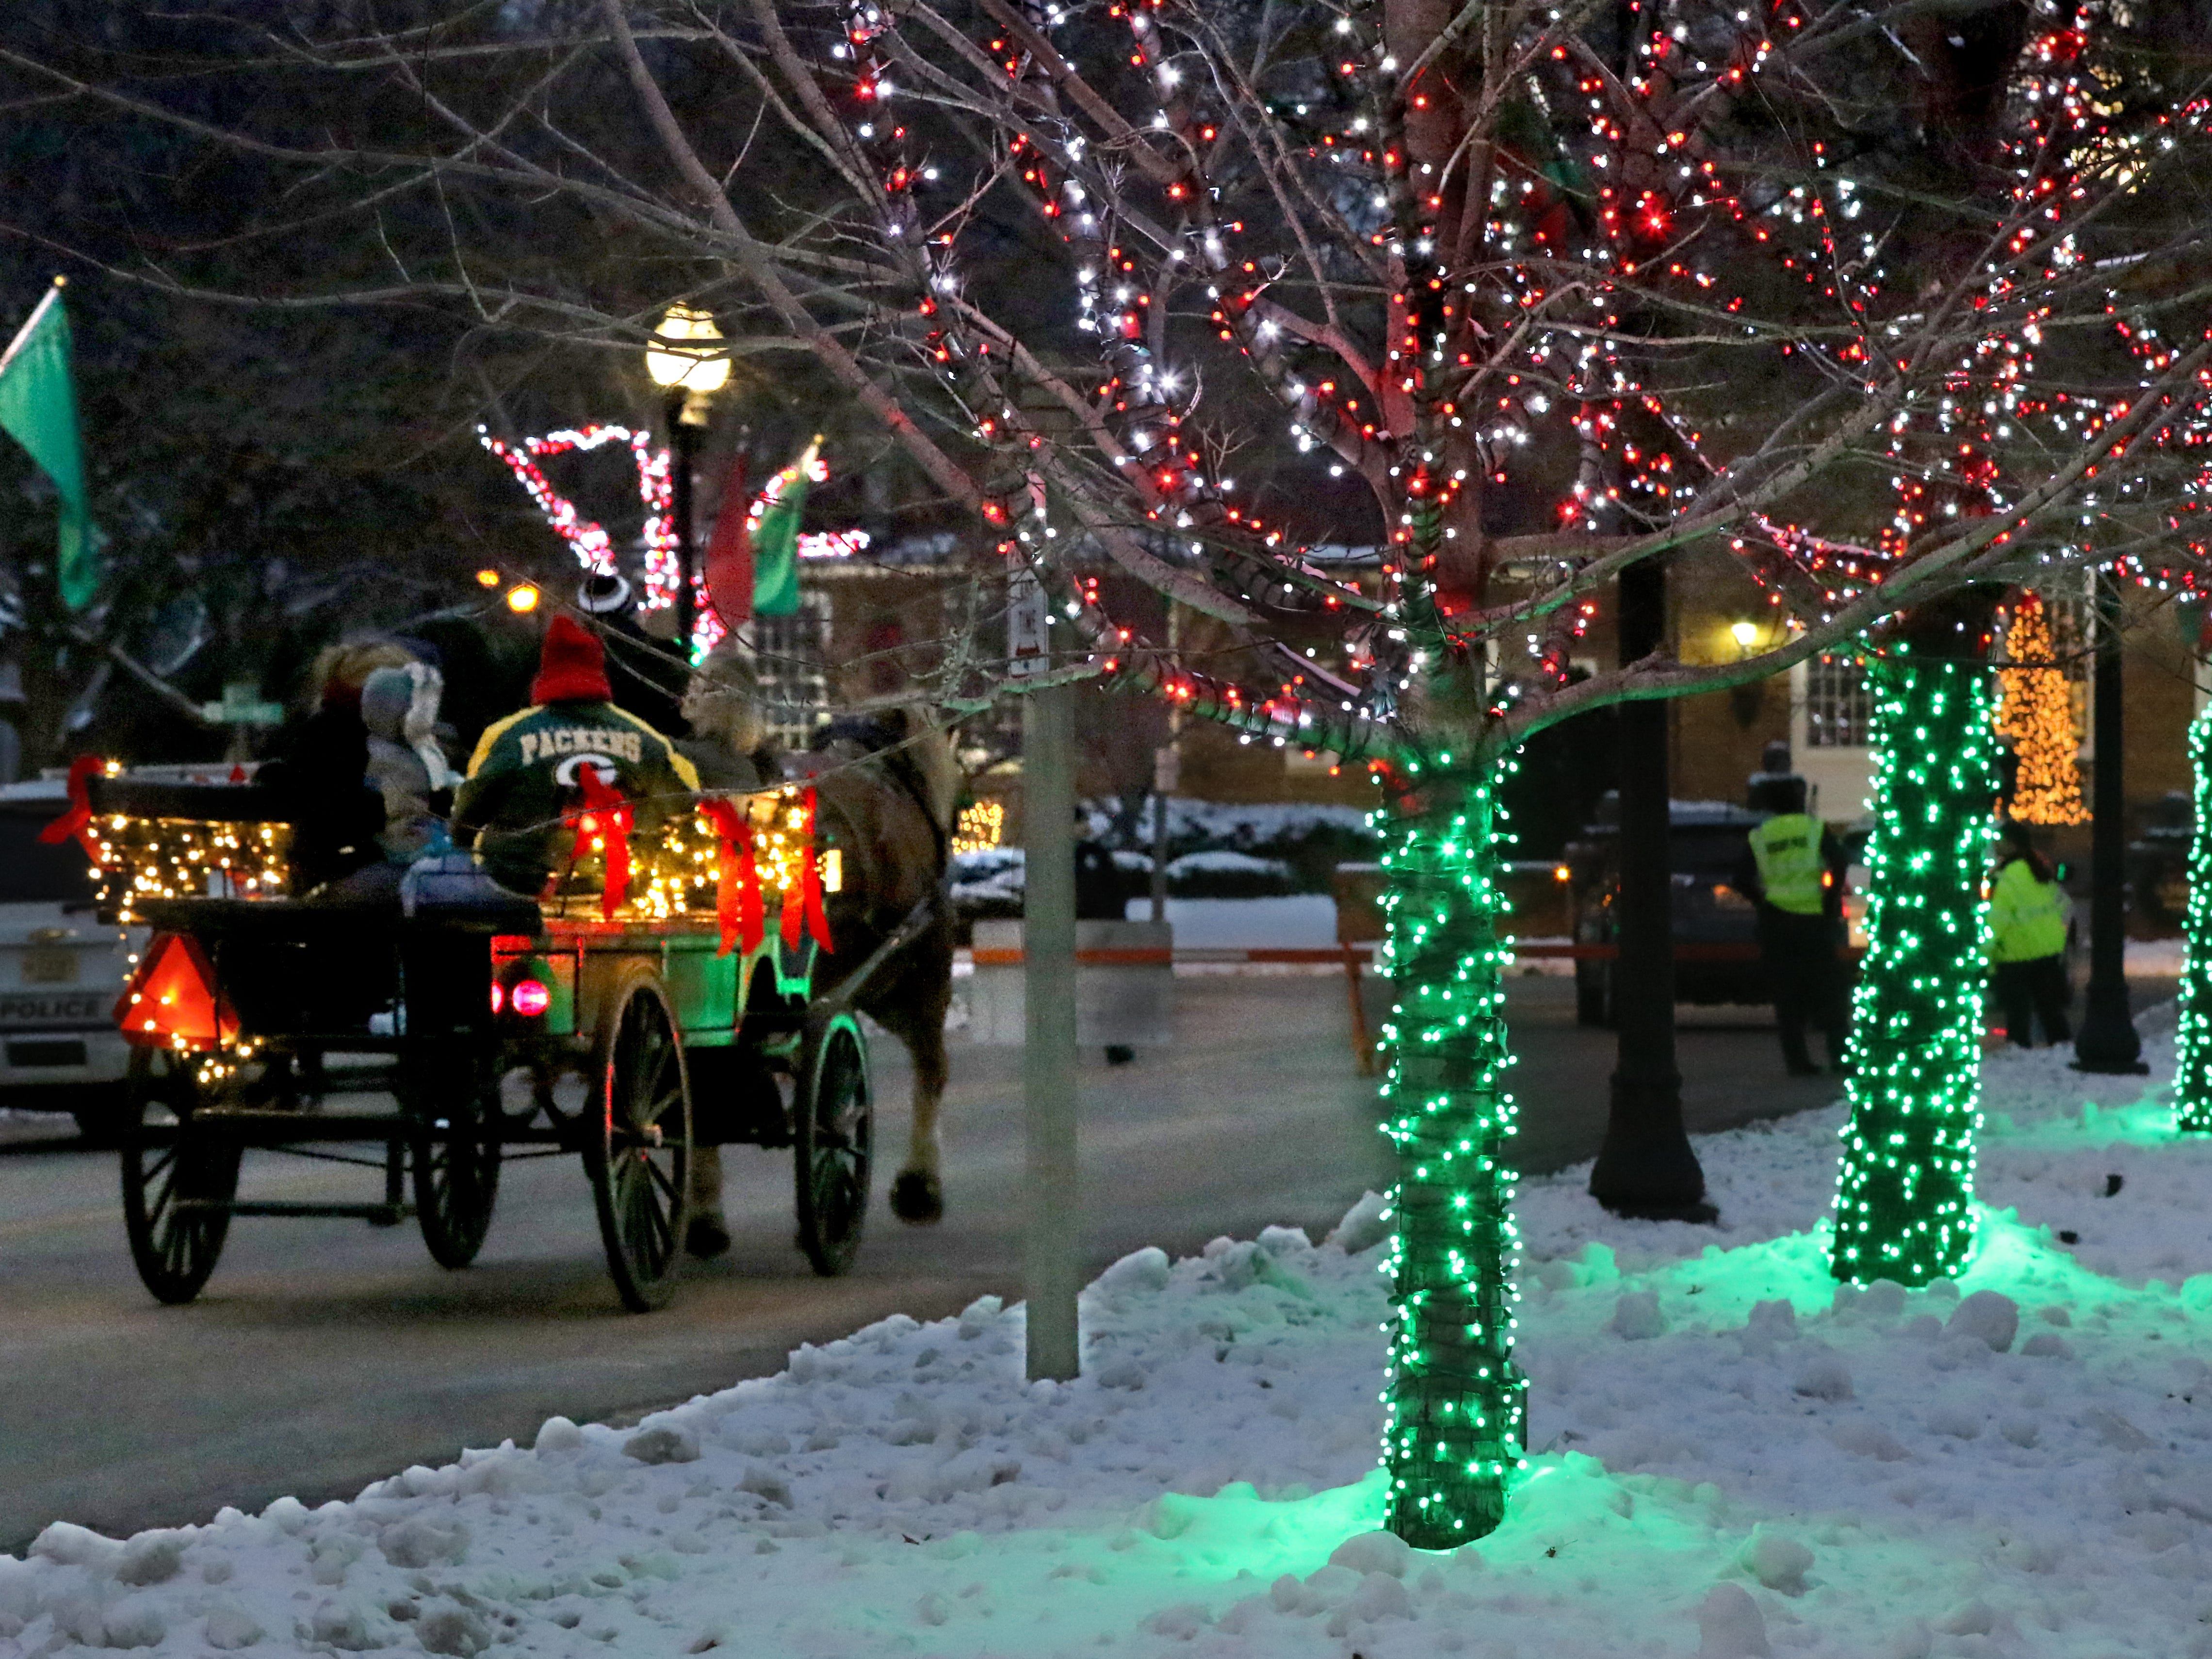 A horse-drawn wagon rolls along Broad Street during Greendale's Dickens of a Christmas Festival on Nov. 30.